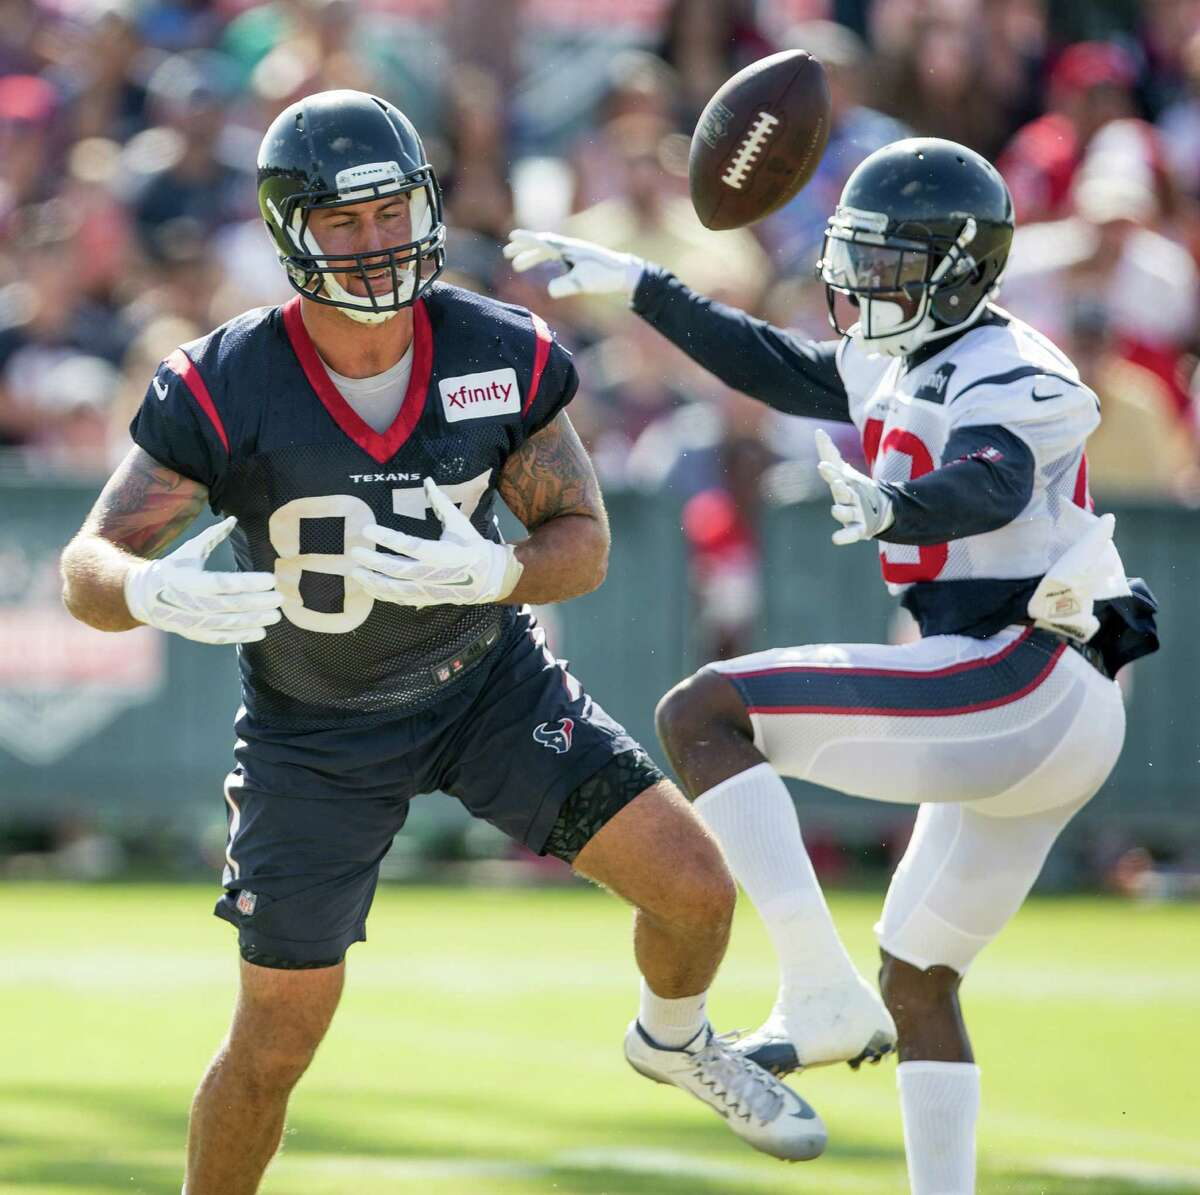 Houston Texans defensive back Corey Moore (43) breaks up a pass intended for tight end C.J. Fiedorowicz (87) during Texans training camp at Houston Methodist Training Center on Sunday, Aug. 7, 2016, in Houston.